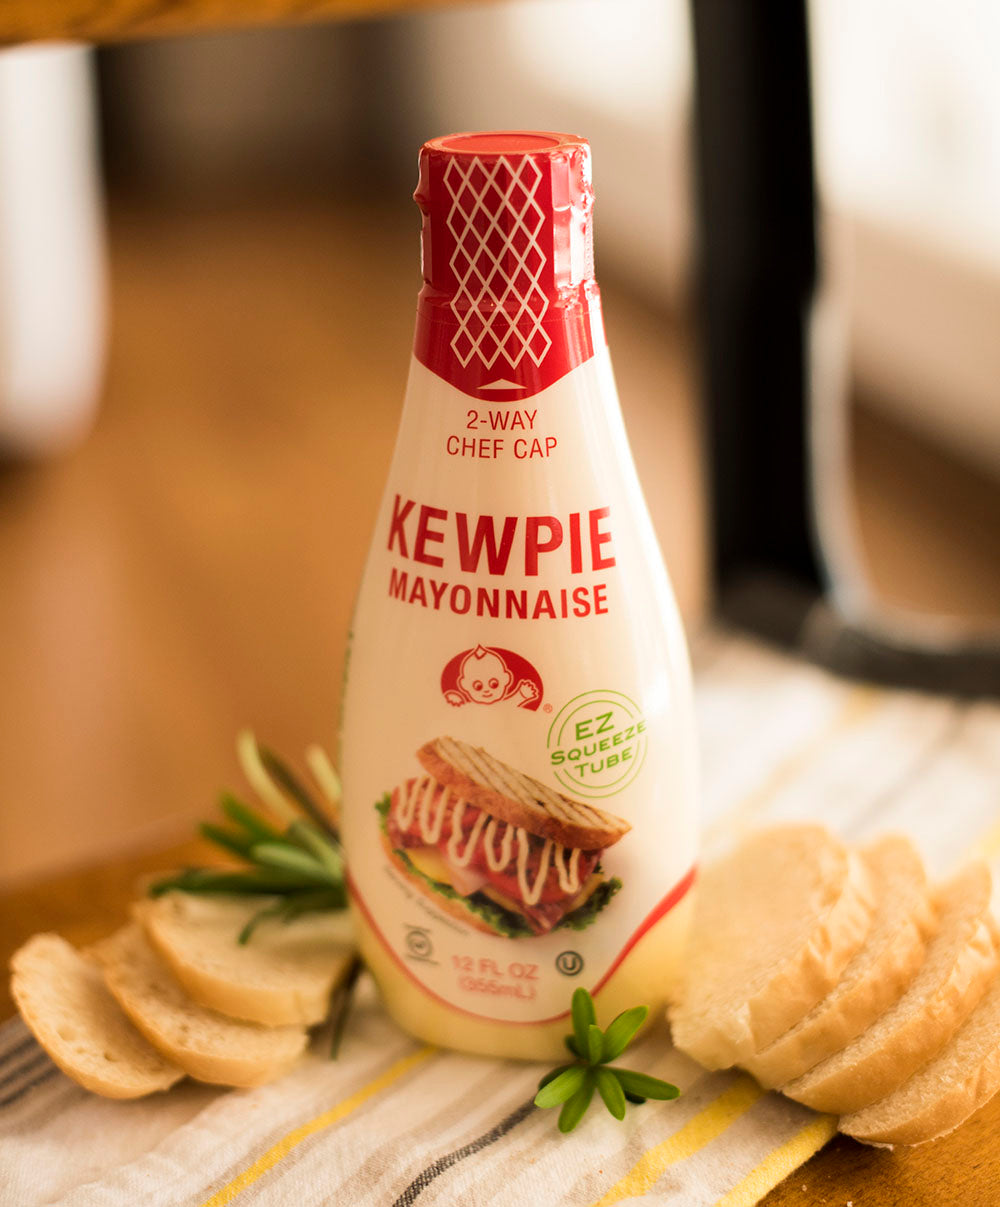 "<a href='http://kewpieusa.com/' target='_blank'><b>Kewpie Japanese Mayonnaise</b></a><br> Kewpie gives every dish a rich, tangy, and distinctive character. Known for its ""umami"" taste, it has a rich and creamy texture that will reinvigorate older recipes into new delights."